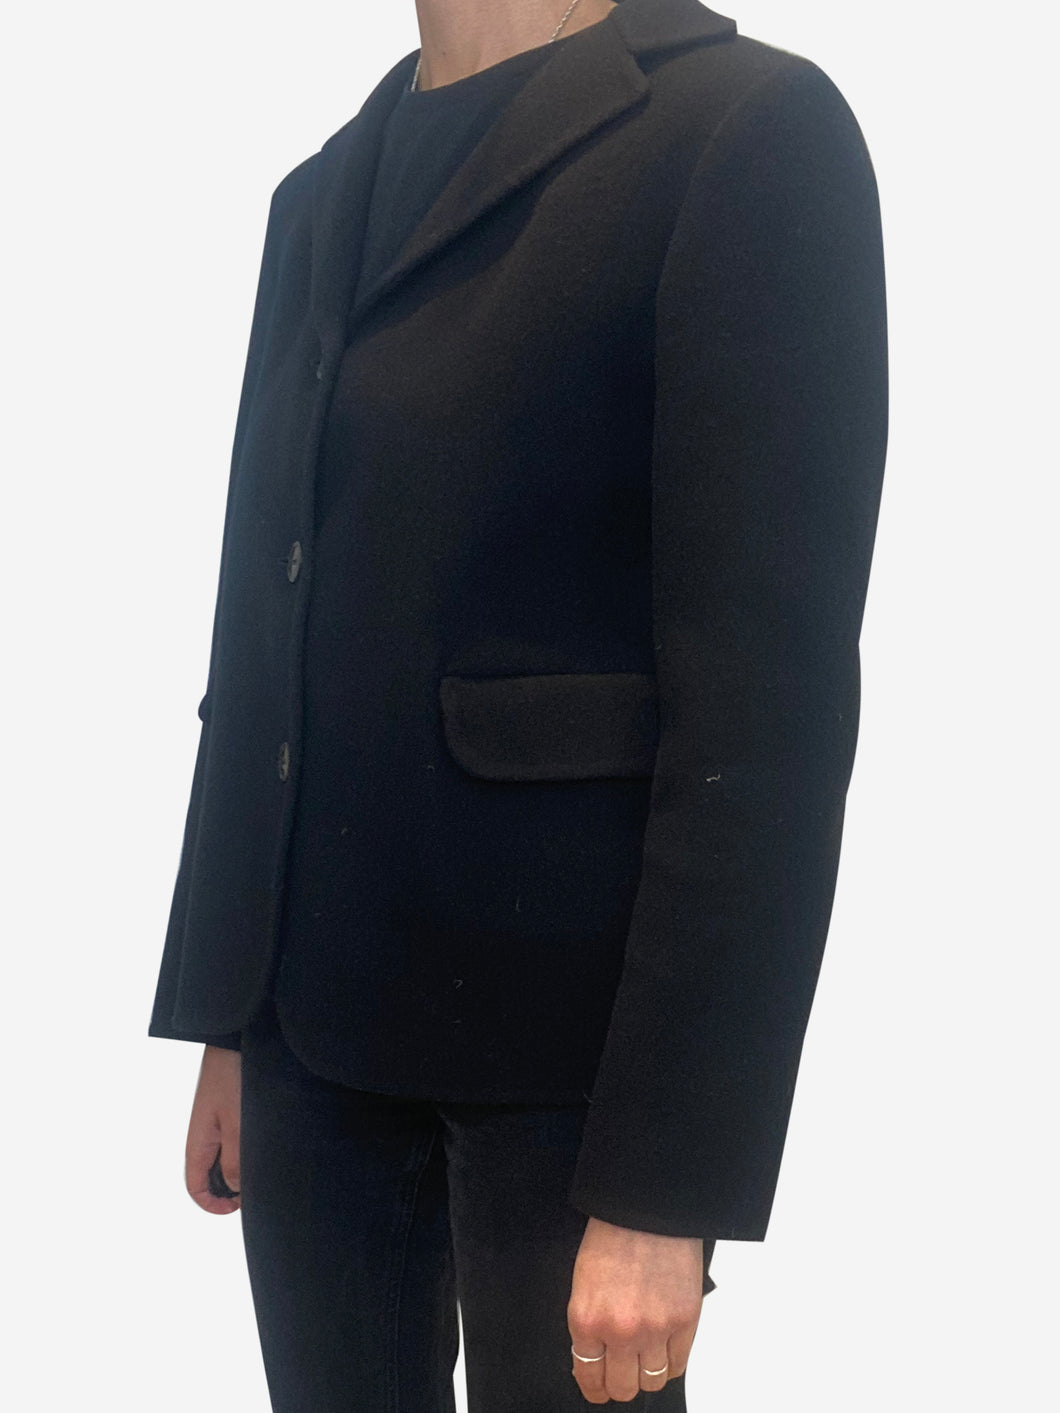 Black long sleeve cashmere jacket - size 8